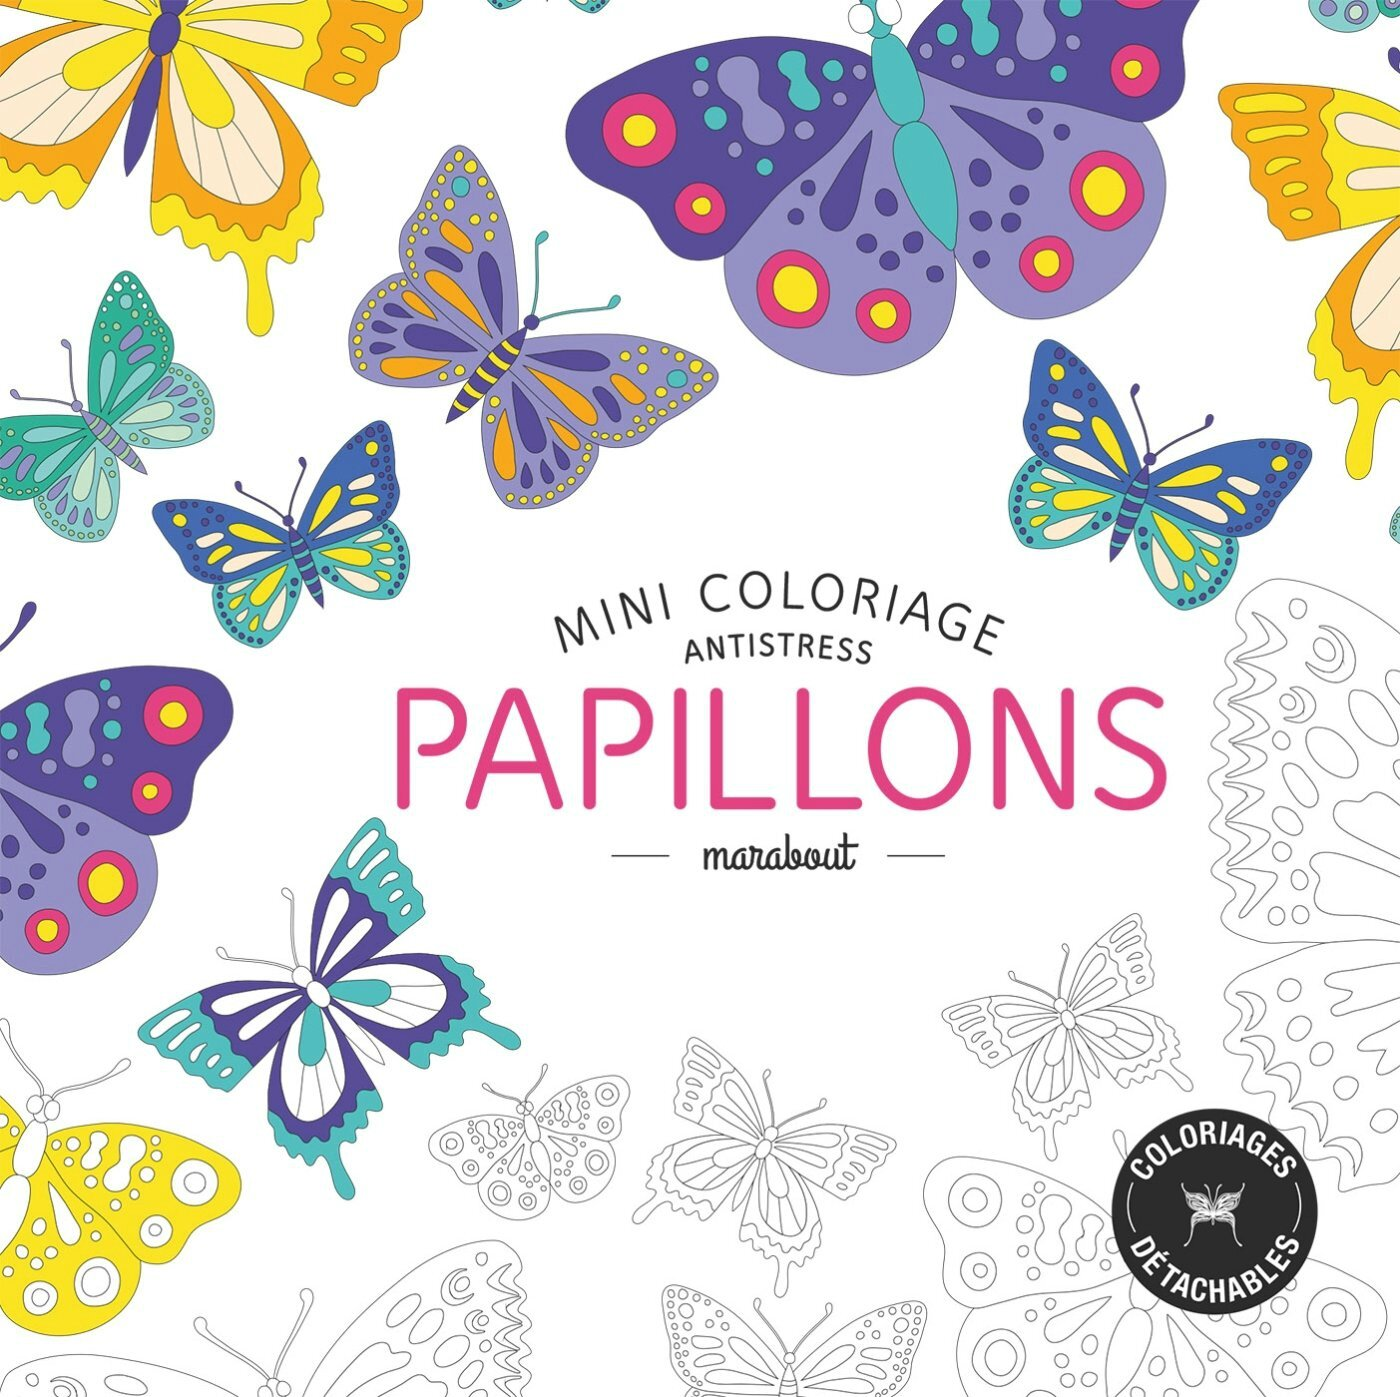 Mini coloriage papillon